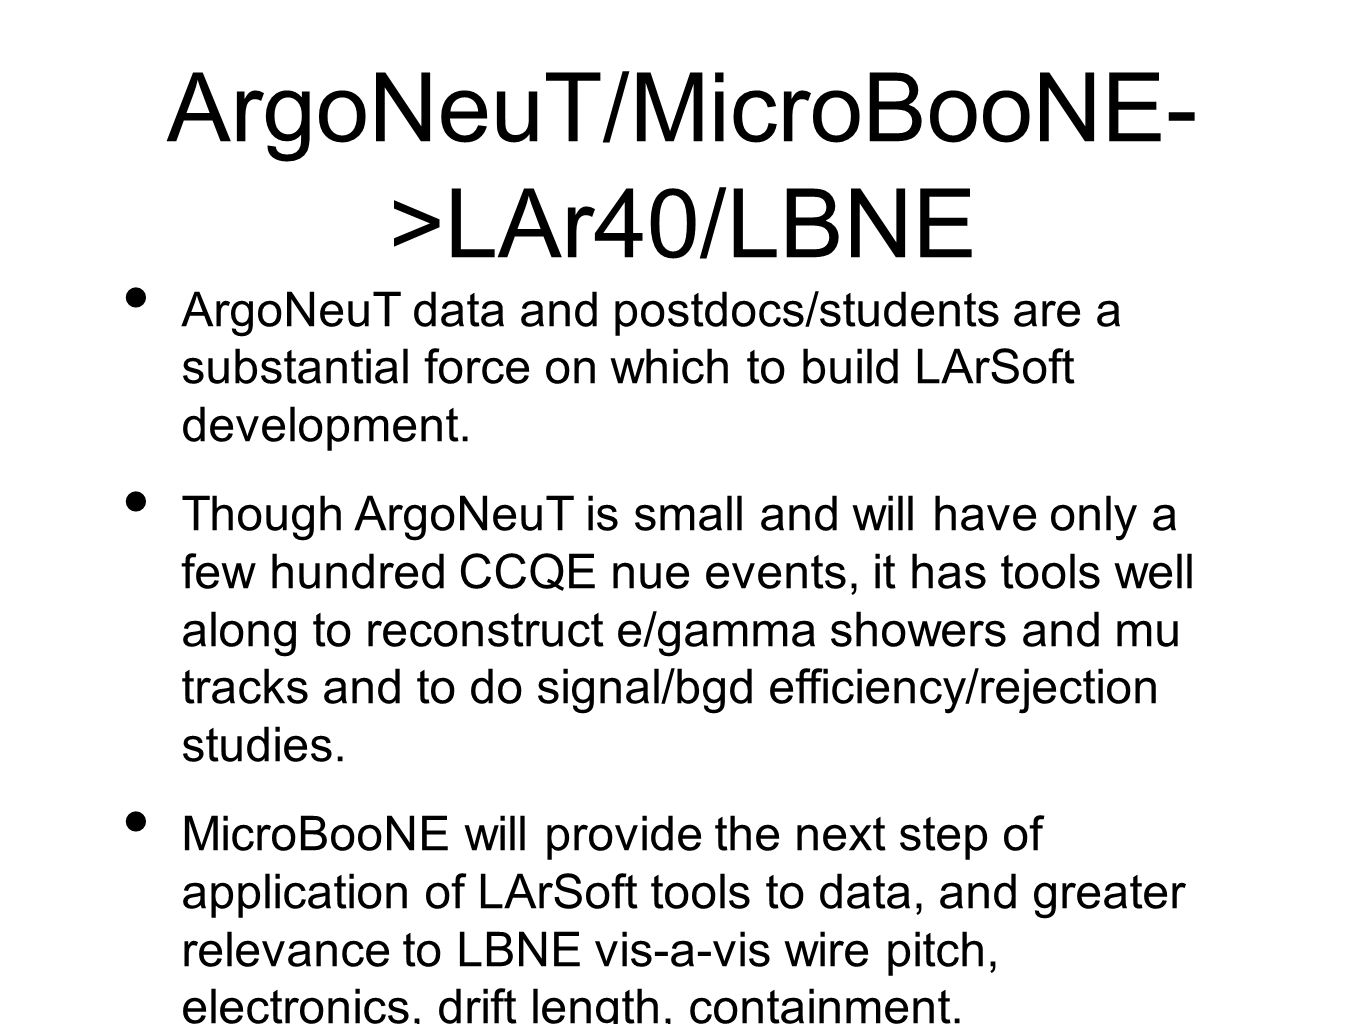 ArgoNeuT/MicroBooNE- >LAr40/LBNE ArgoNeuT data and postdocs/students are a substantial force on which to build LArSoft development.